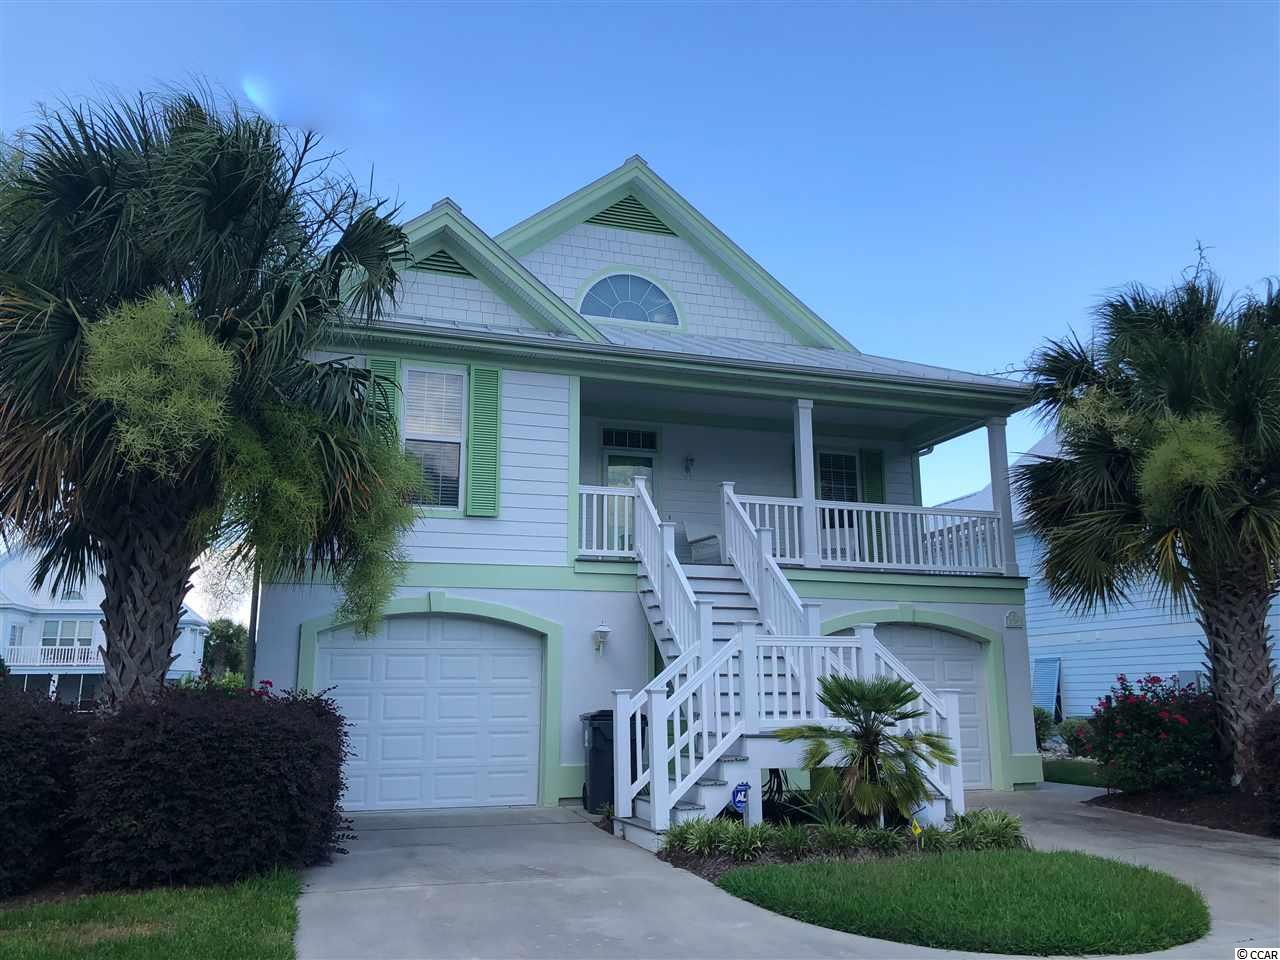 Never Rented! What a gorgeous and HUGE home near the ocean. Oceanside Village has its own gated beachfront access, with a bathroom and gazebo, next to the Conch Café. Imagine going to the beach by golf cart, lunching on the porch of the Conch with a divine ocean view, returning to taking a dip in one of the two community pools, and having a raised beach home large enough for the whole family! Bermuda Bay is a beautiful neighborhood inside Oceanside Village. The pastel homes are stately, and this home boasts five bedrooms, four and a half baths. The downstairs could be a separate apartment for mother or guests, or rentals, since it has its own kitchen, living/dining, two bedrooms and large bath. Upstairs, you find a huge master suite, another master suite, and a kids' room with bunkbeds, a twin and a sofa. The kitchen is open and airy and connects to the dining area. The neighborhood has a giant community center, with fun activities, tennis, bocce ball, pickle ball, playground, dog park, and much more. Lakes and green areas are found all around the community. You will love the fitness center and library. Don't miss the chance to buy into this lifestyle! This home is beautifully and elegantly furnished. Ready for you to enjoy...